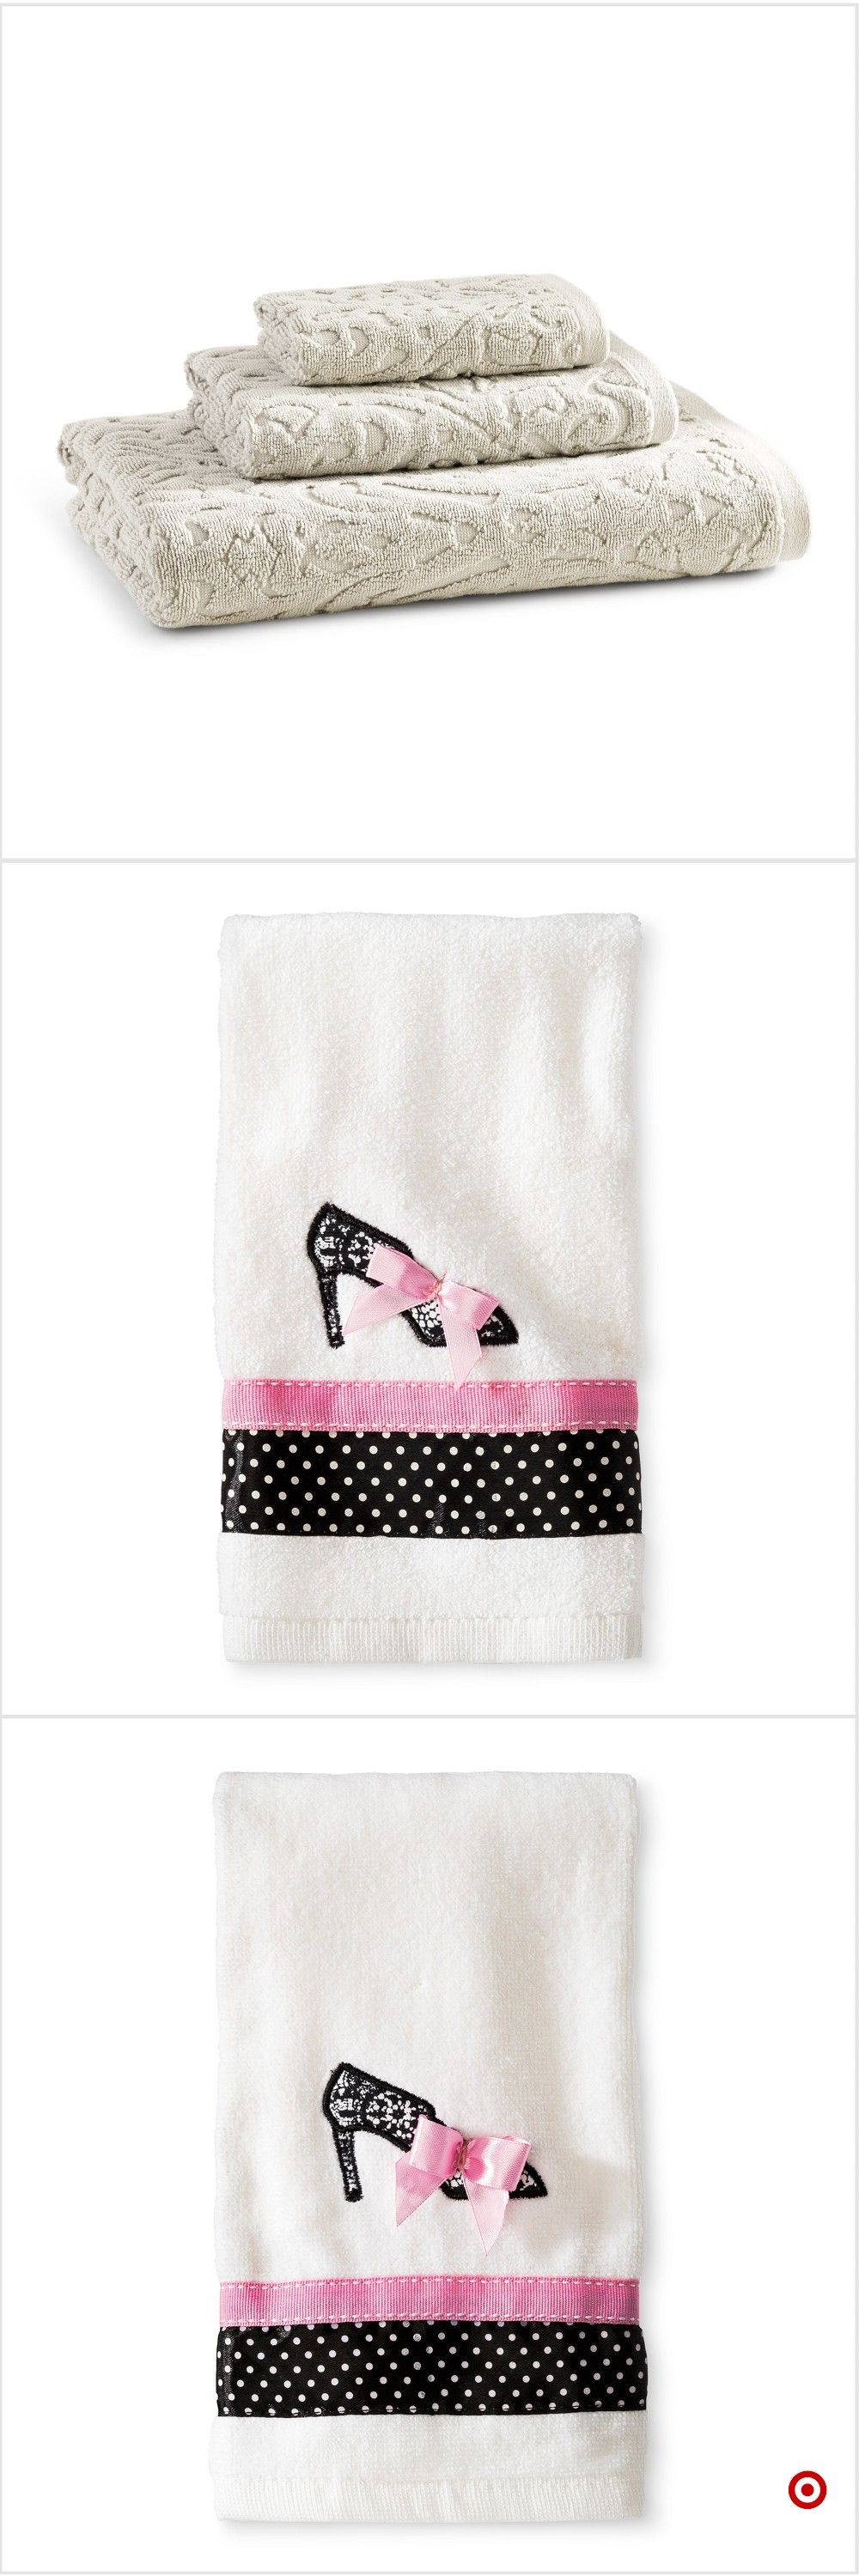 Shop Target For Bath Wraps You Will Love At Great Low Prices Free